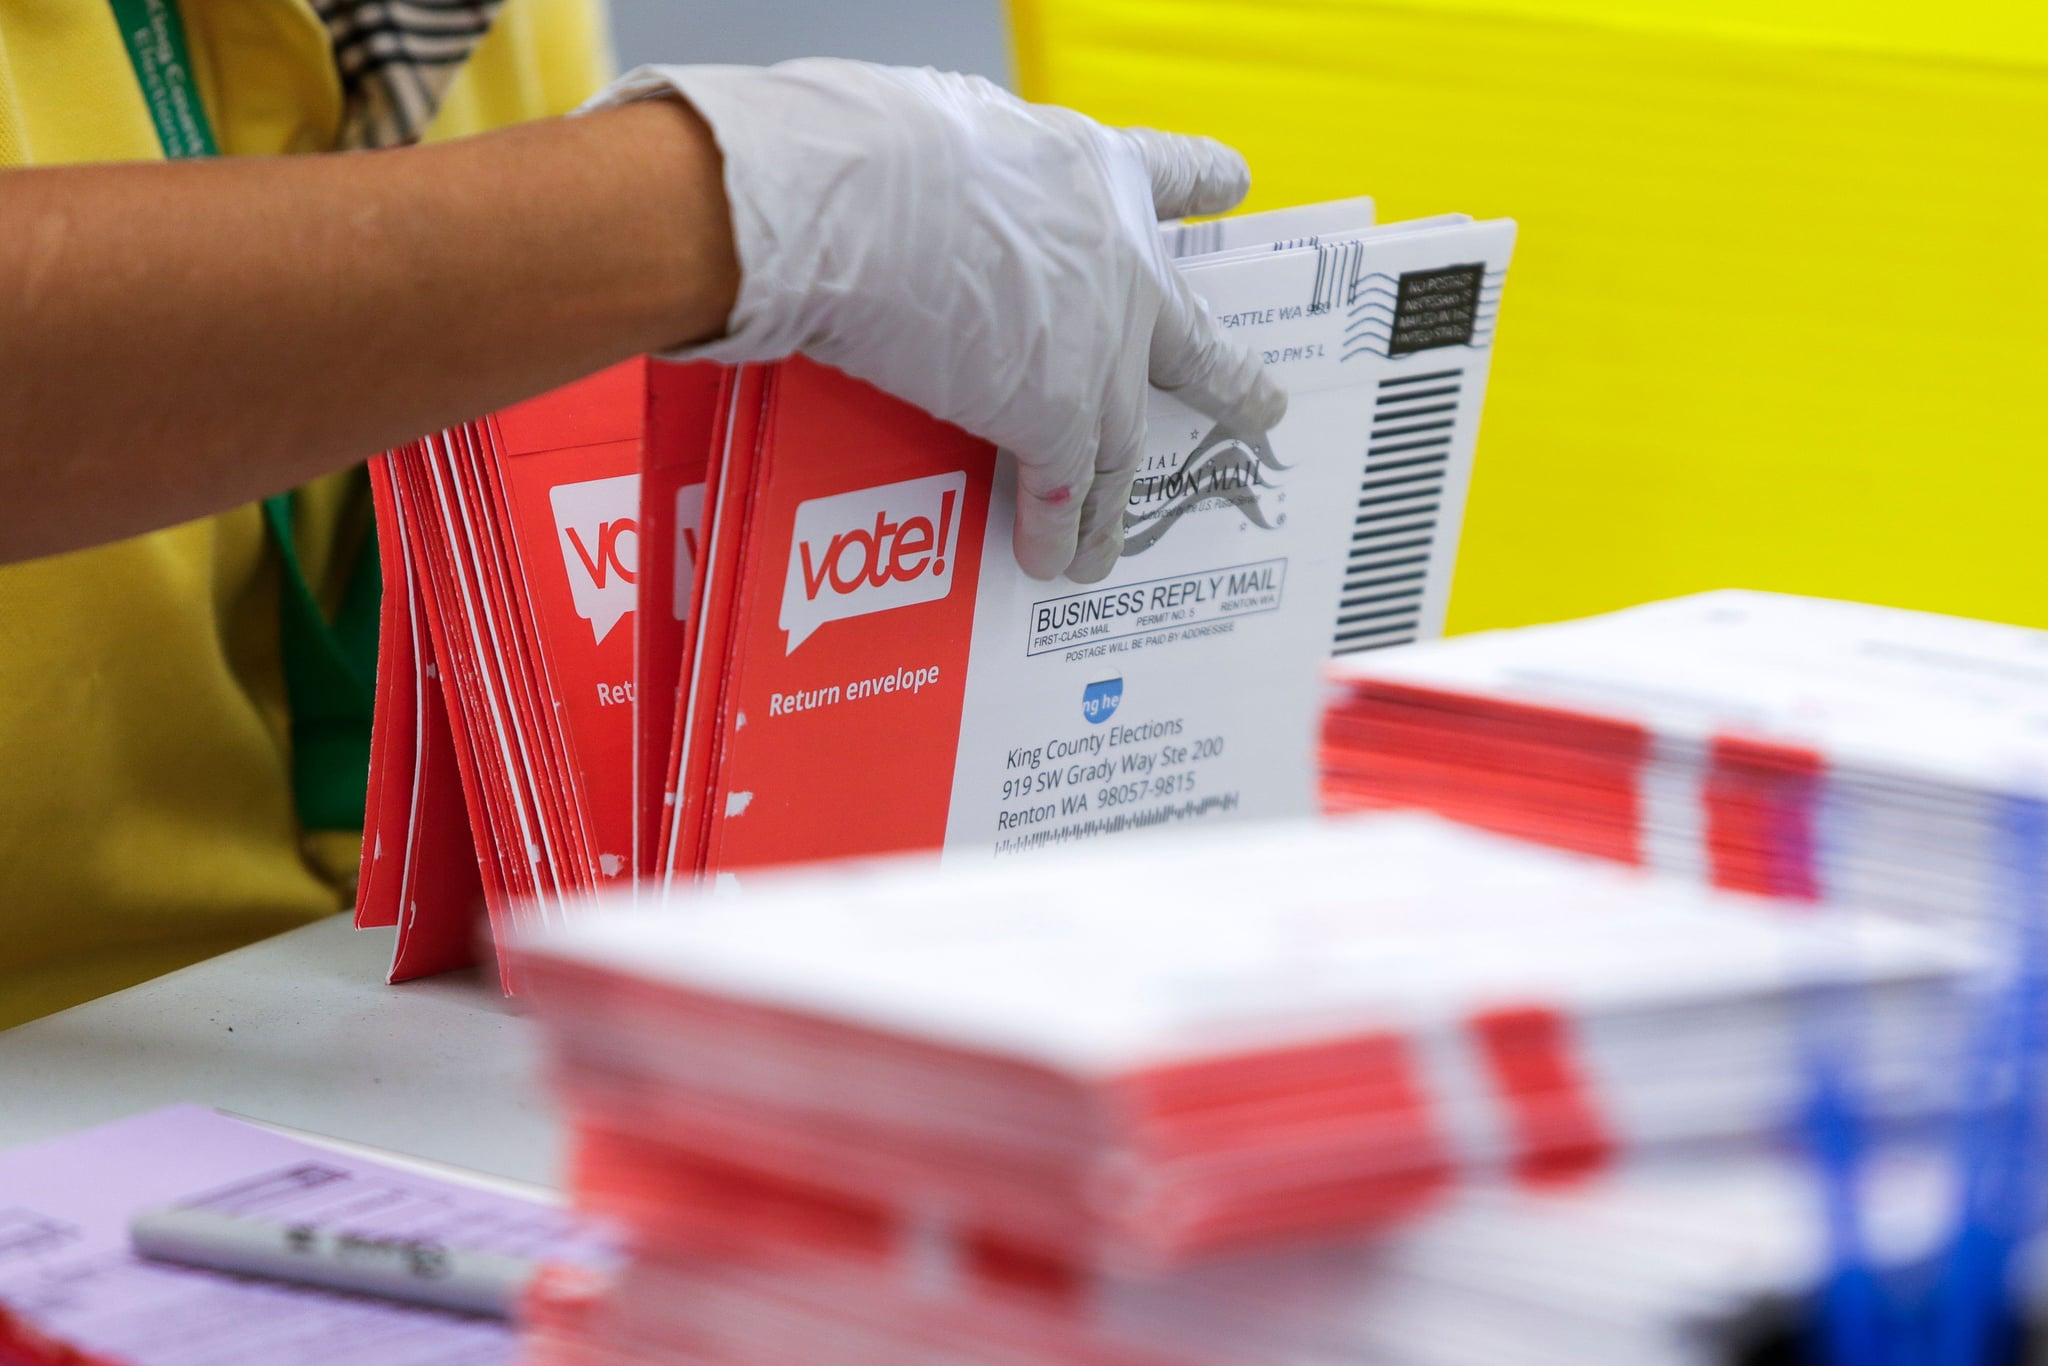 An election worker opens envelopes containing vote-by-mail ballots for the August 4 Washington state primary at King County Elections in Renton, Washington on August 3, 2020. (Photo by Jason Redmond / AFP) (Photo by JASON REDMOND/AFP via Getty Images)